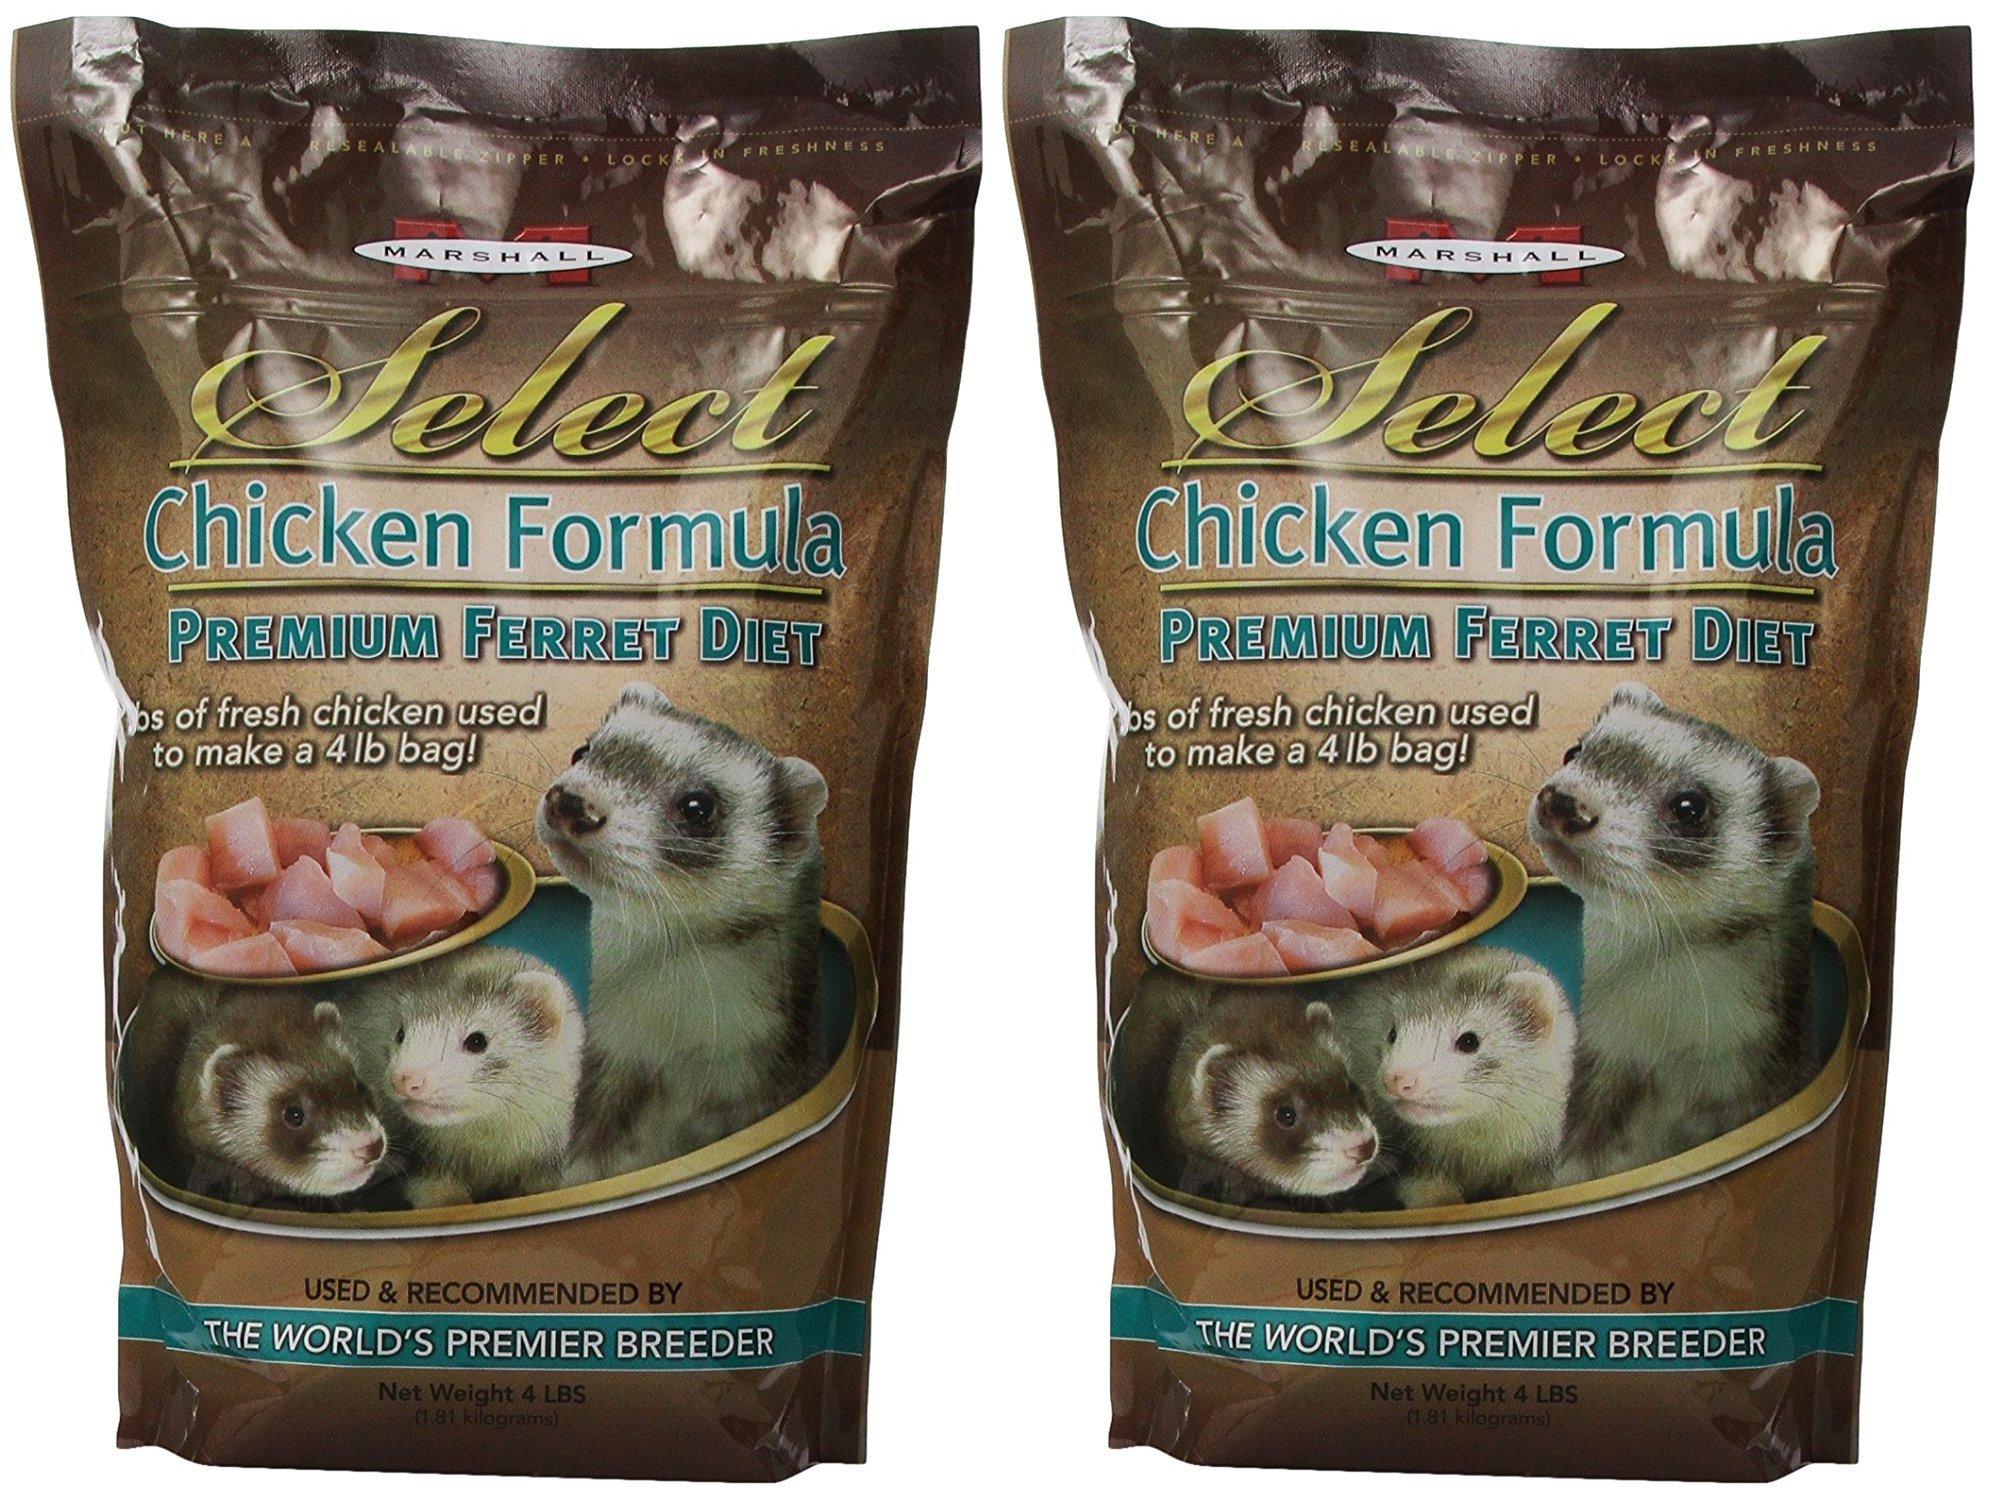 Marshall Pet Products (2 Pack) Select Chicken Formula Premium Ferret Diet by Marshall Pet Products (Image #1)